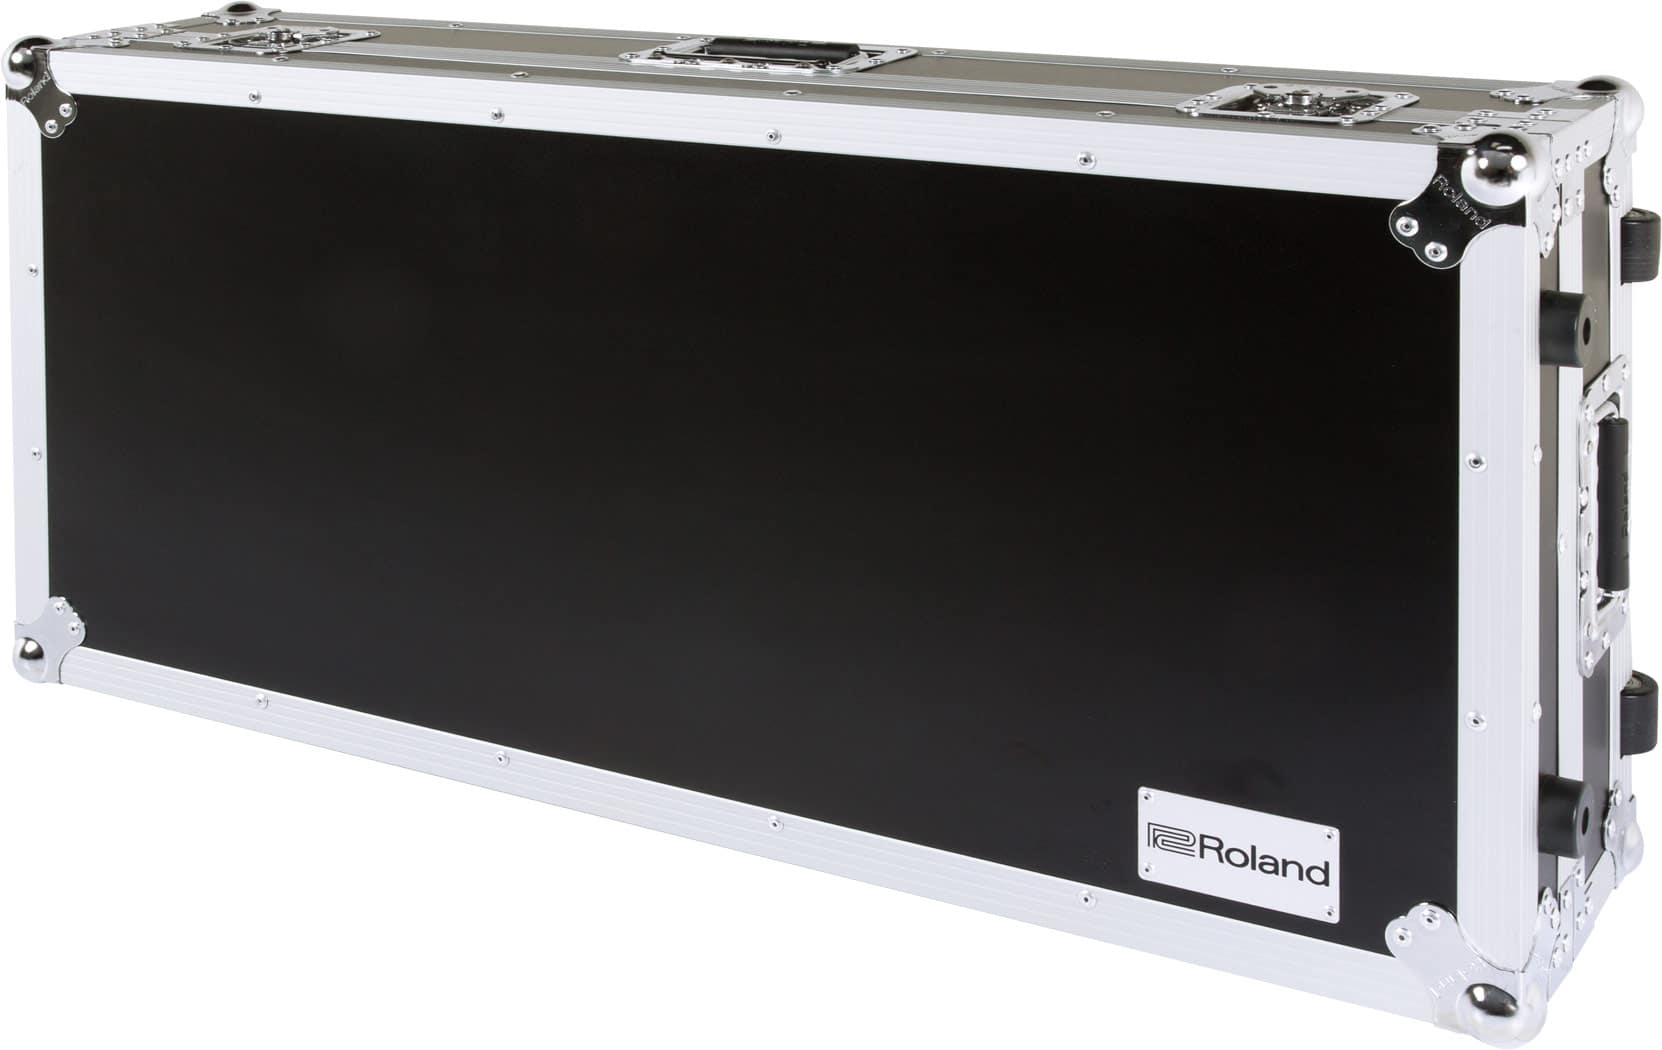 roland-rrc-49w-heavy-duty-road-case-for-49-note-keyboards main